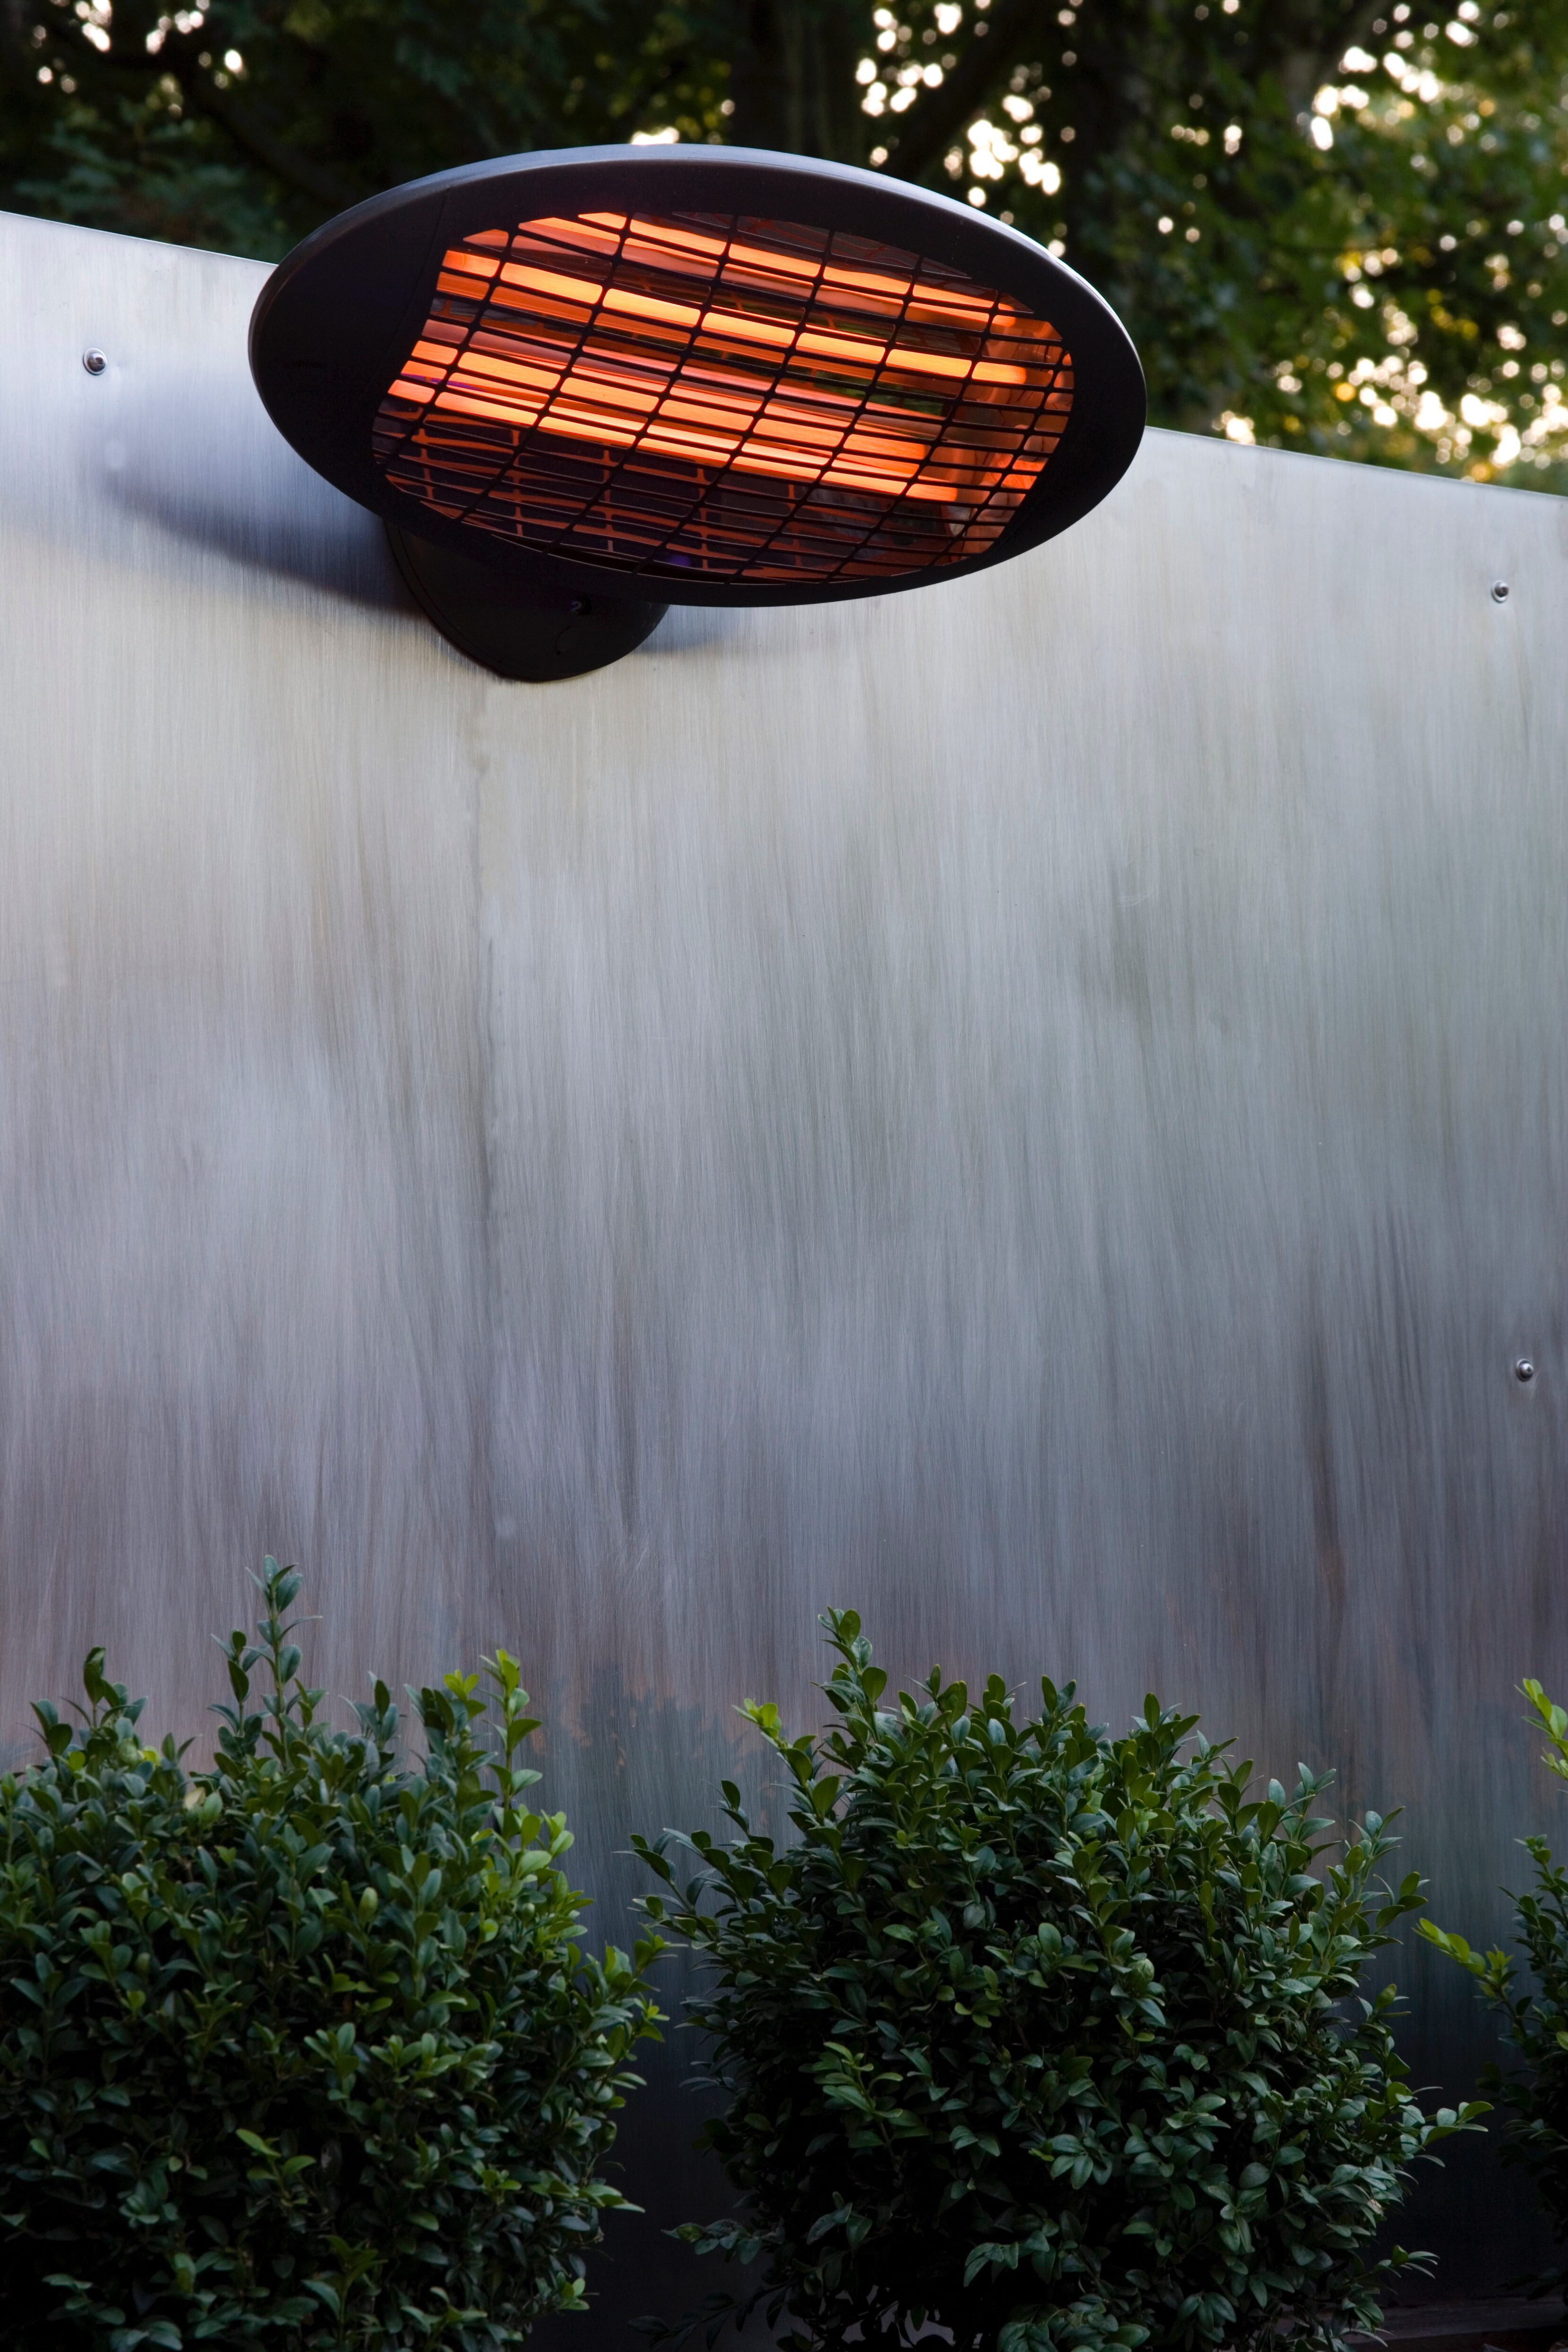 Add lights and heat to enhance your garden patio design